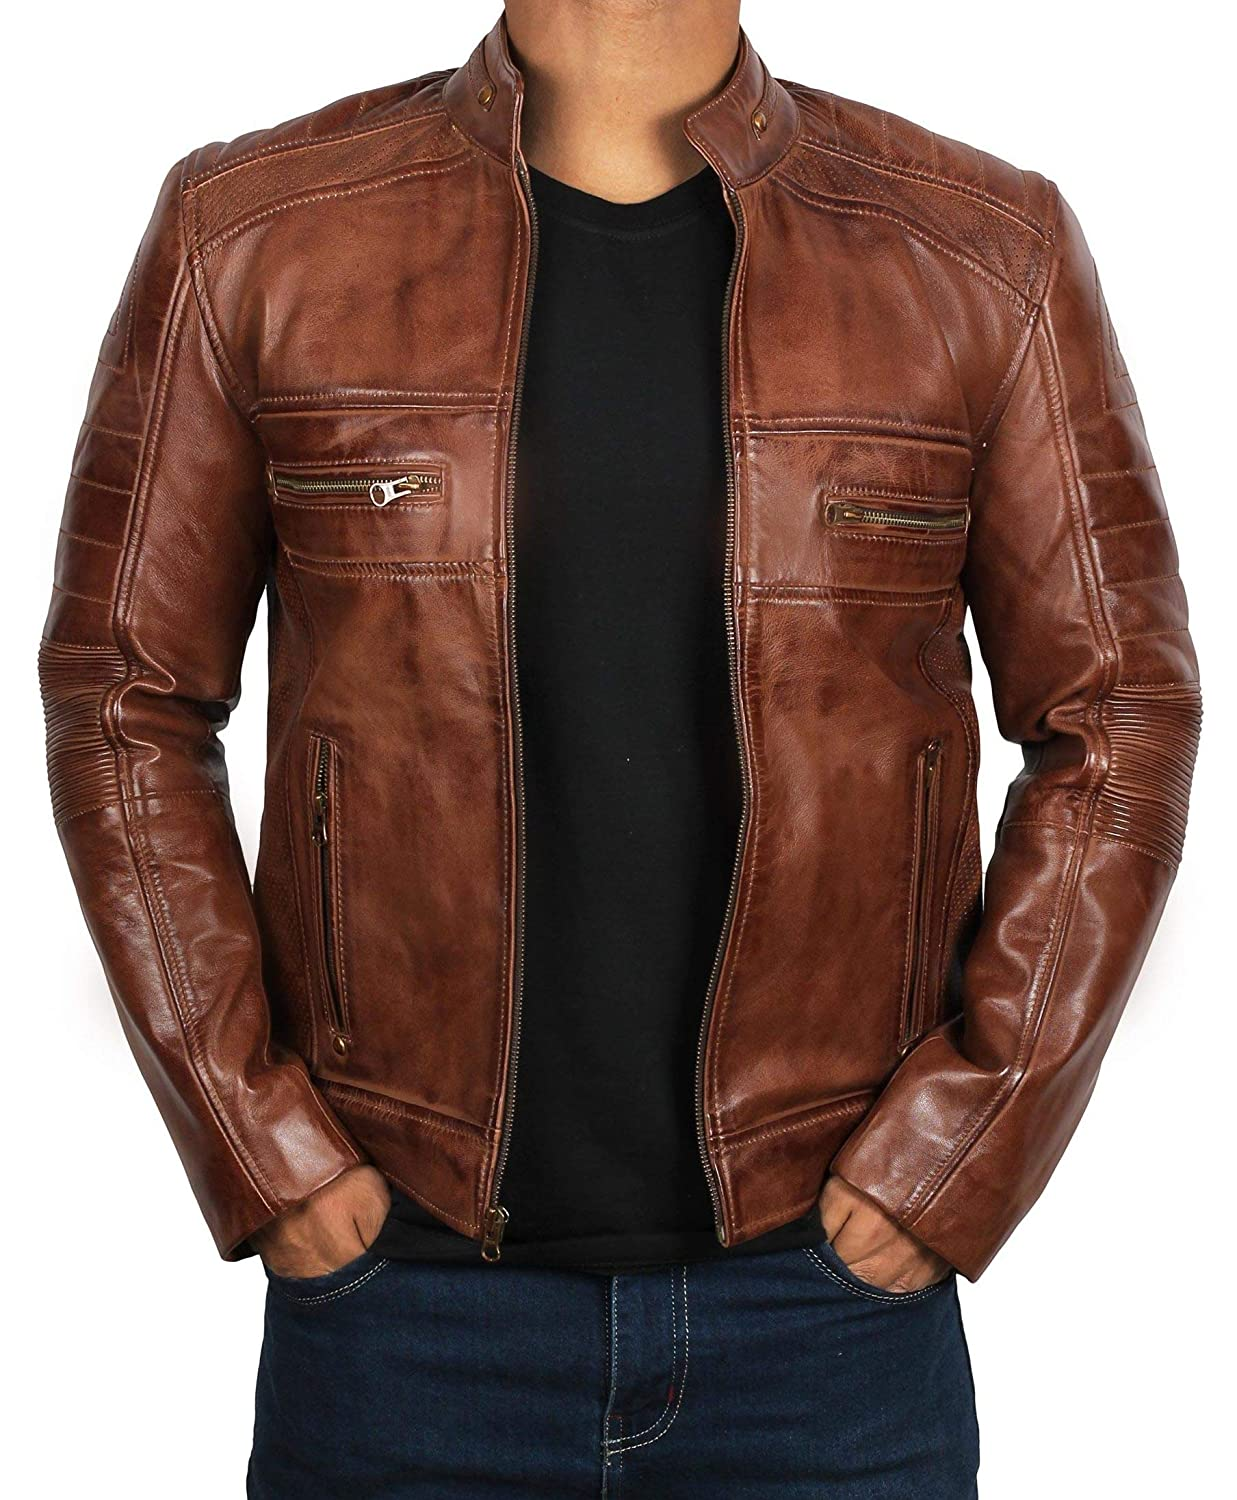 8cd6463fc Brown Leather Jacket for Men - Distressed Genuine Motorcycle Leather Jackets